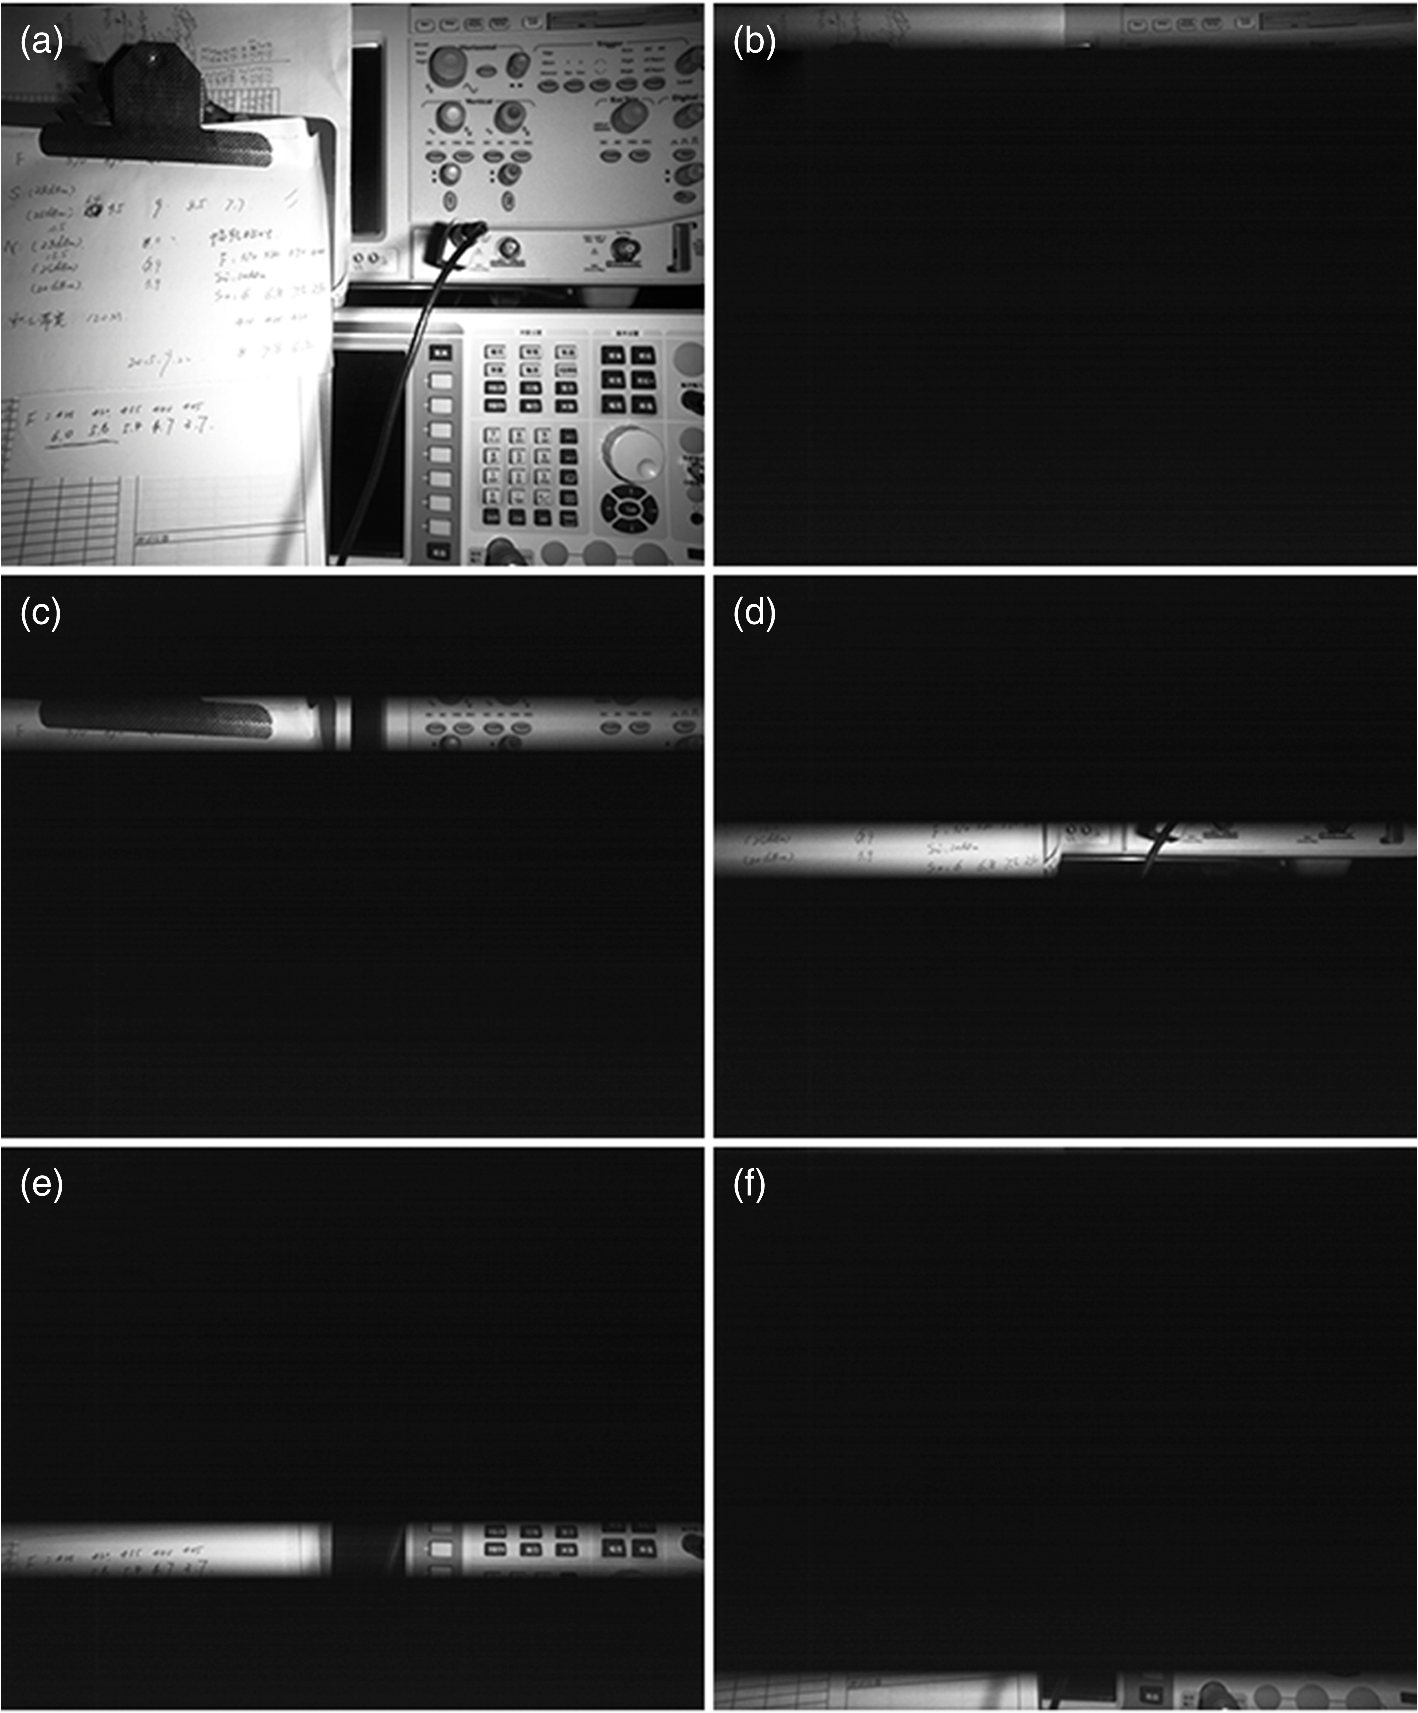 Laser Line Scan Underwater Imaging By Complementary Metaloxide Two Way 12 Led Running Lights Using Cd4017 And Ne555 A Measurement Of The Rolling Shutter Period Via Images Captured Under Continuous Lighting Short Light Pulse Following Cameras Trigger